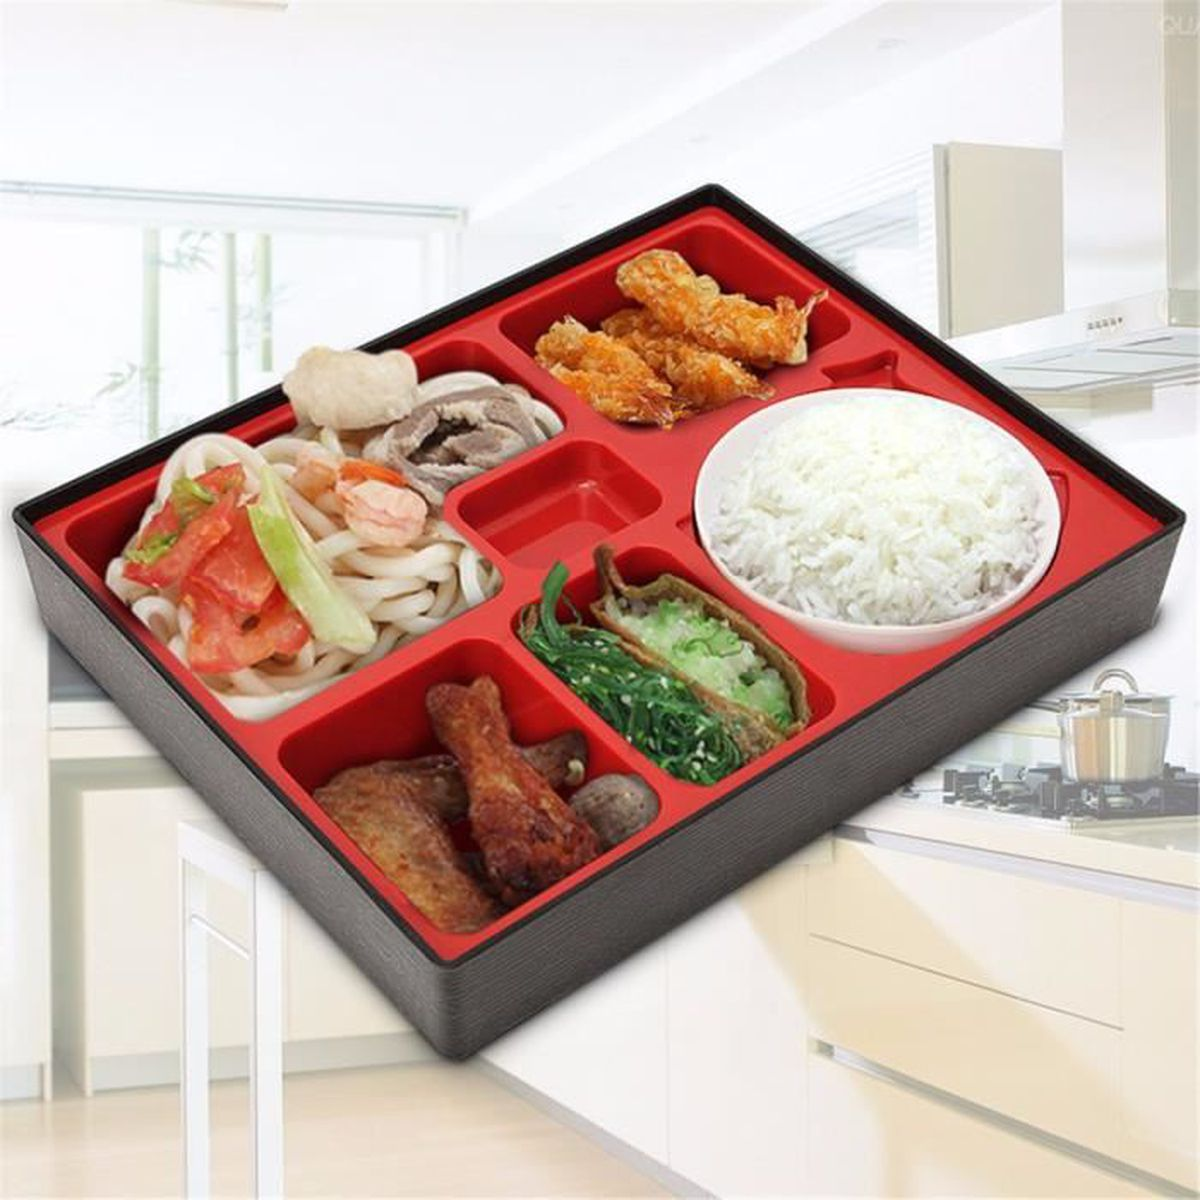 bento box bo te repas dejeuner lunch japonaise sushi. Black Bedroom Furniture Sets. Home Design Ideas